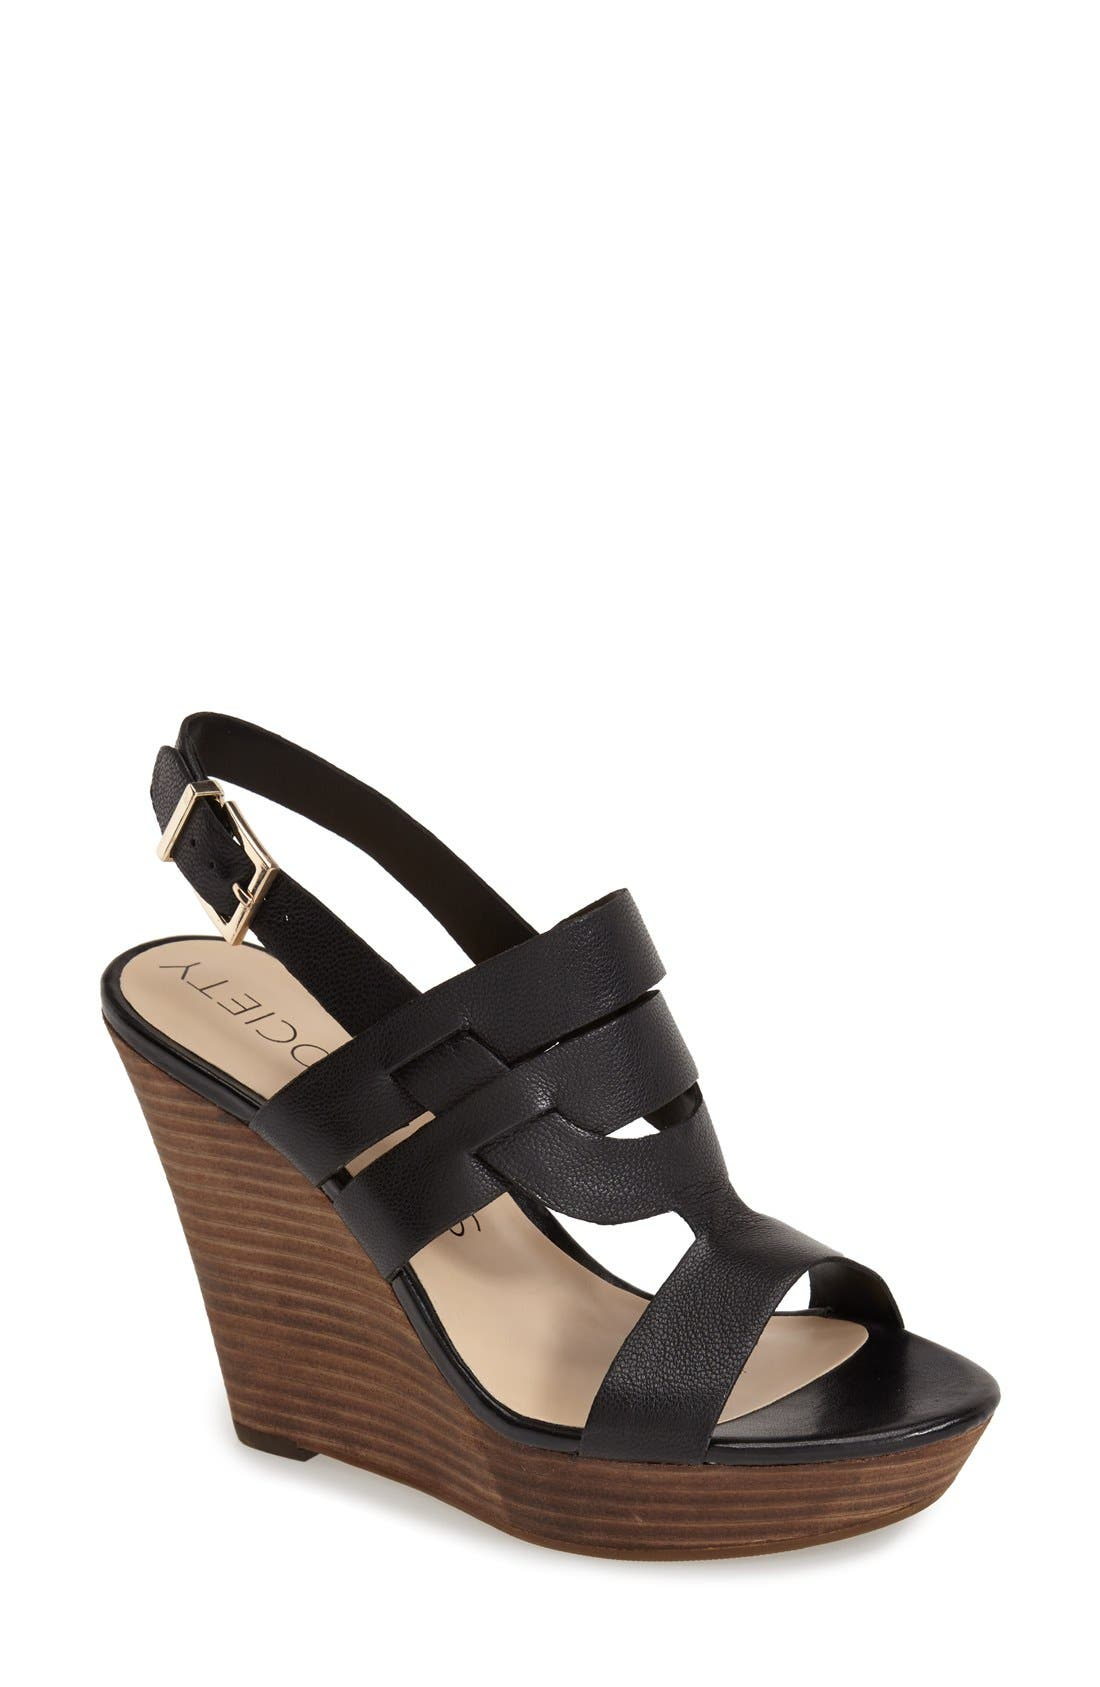 'Jenny' Slingback Wedge Sandal, Main, color, 001